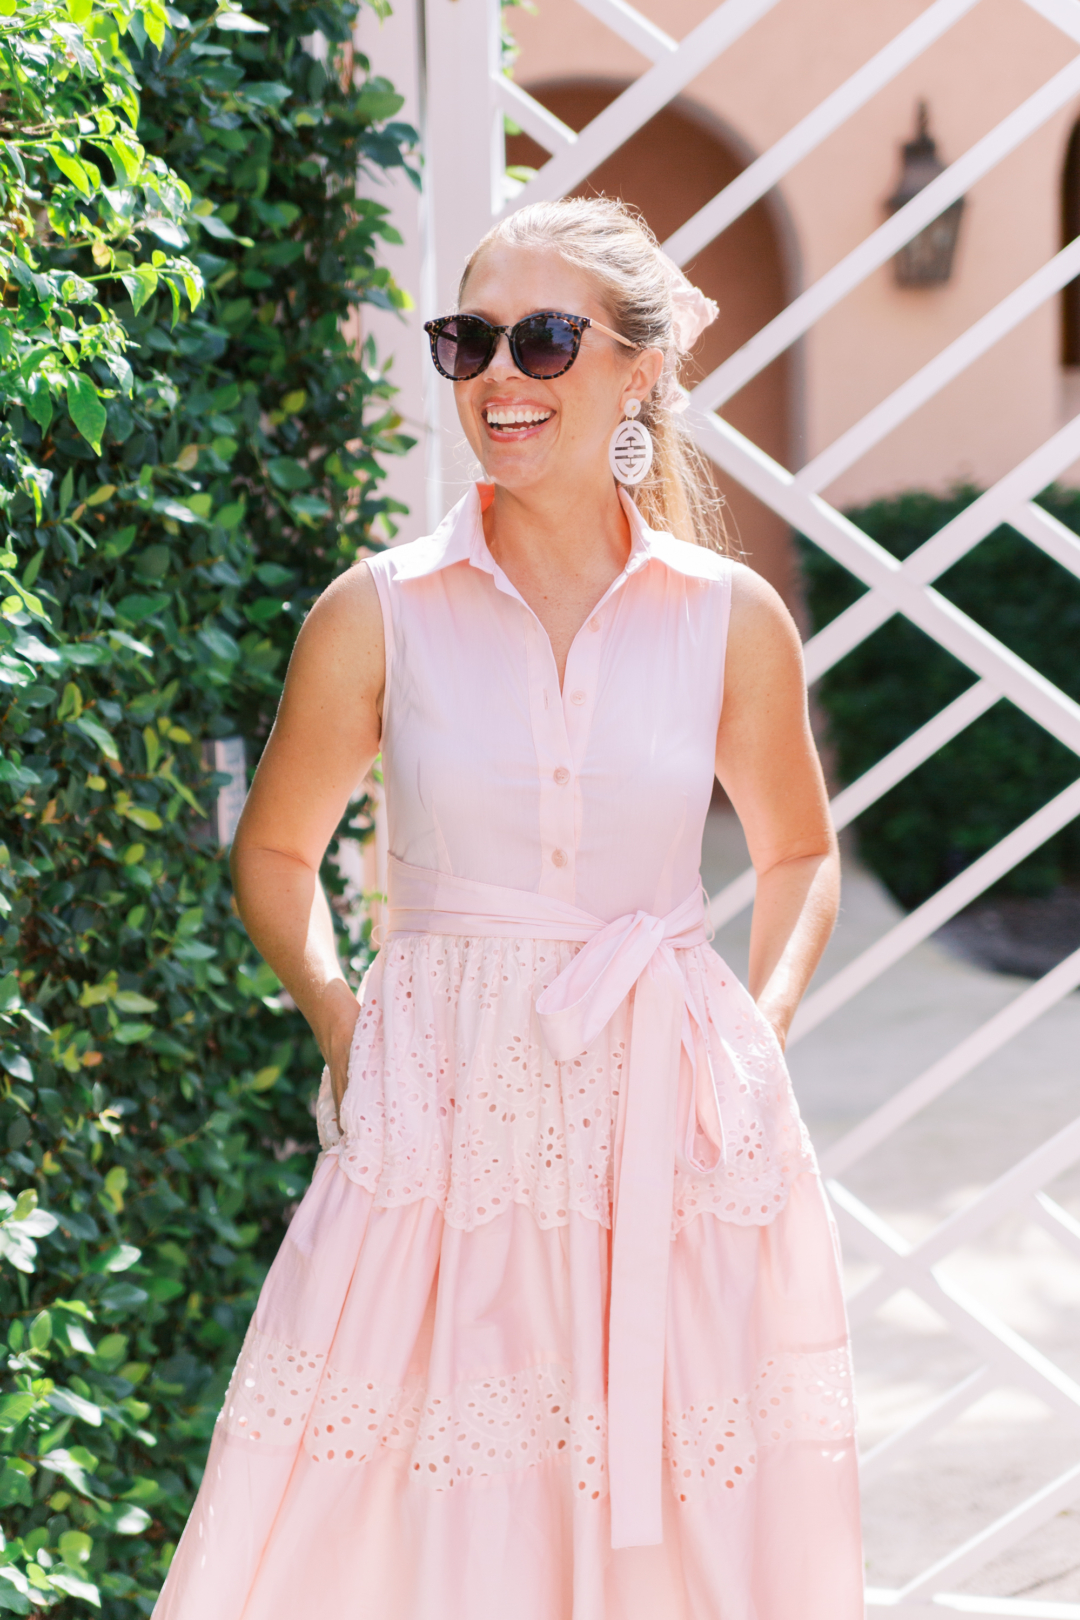 Fashion: vineyard vines x palm beach lately's influencer trip in palm beach